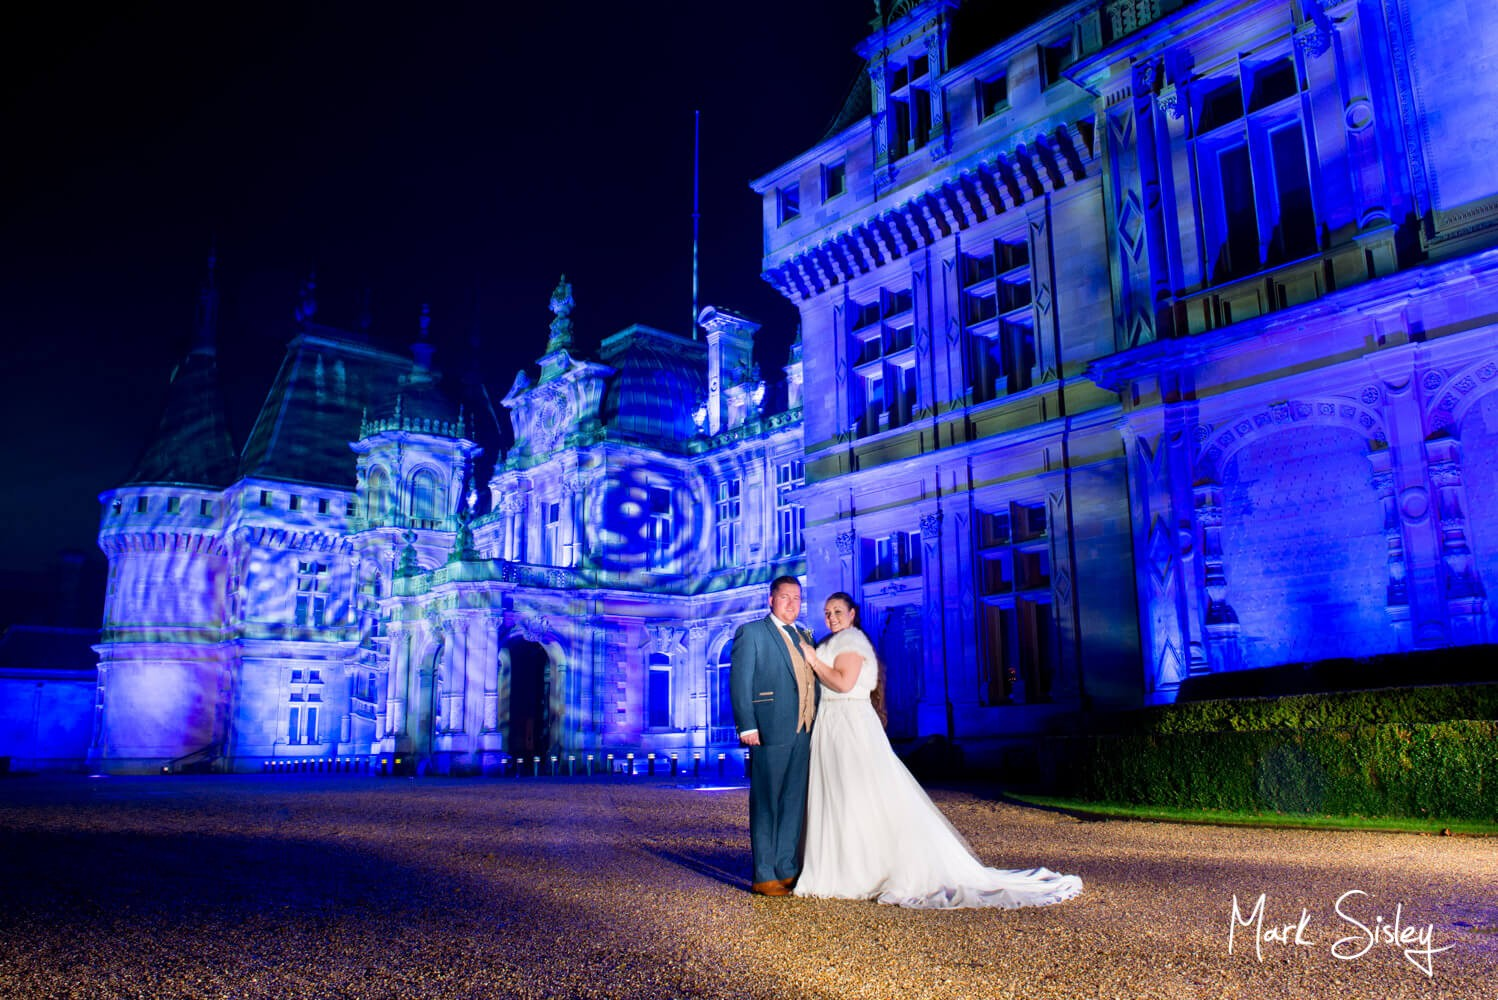 Floodlit Manor House at Waddesdon Dairy winter wedding